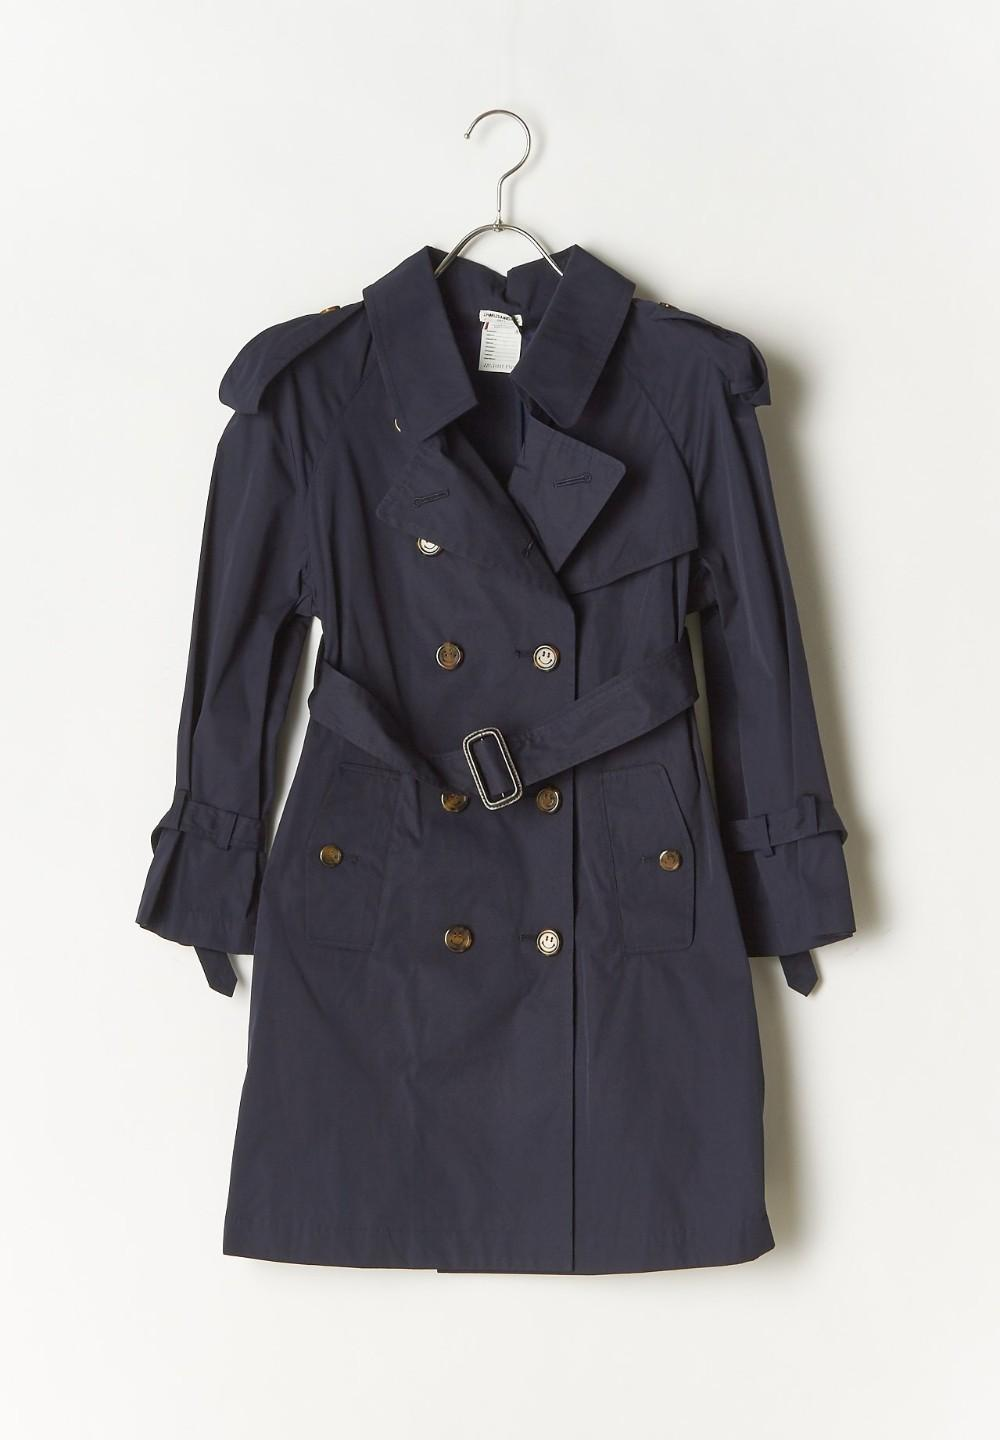 CHARLES SIGNATURE TRENCH NAVY & BLUE - #1